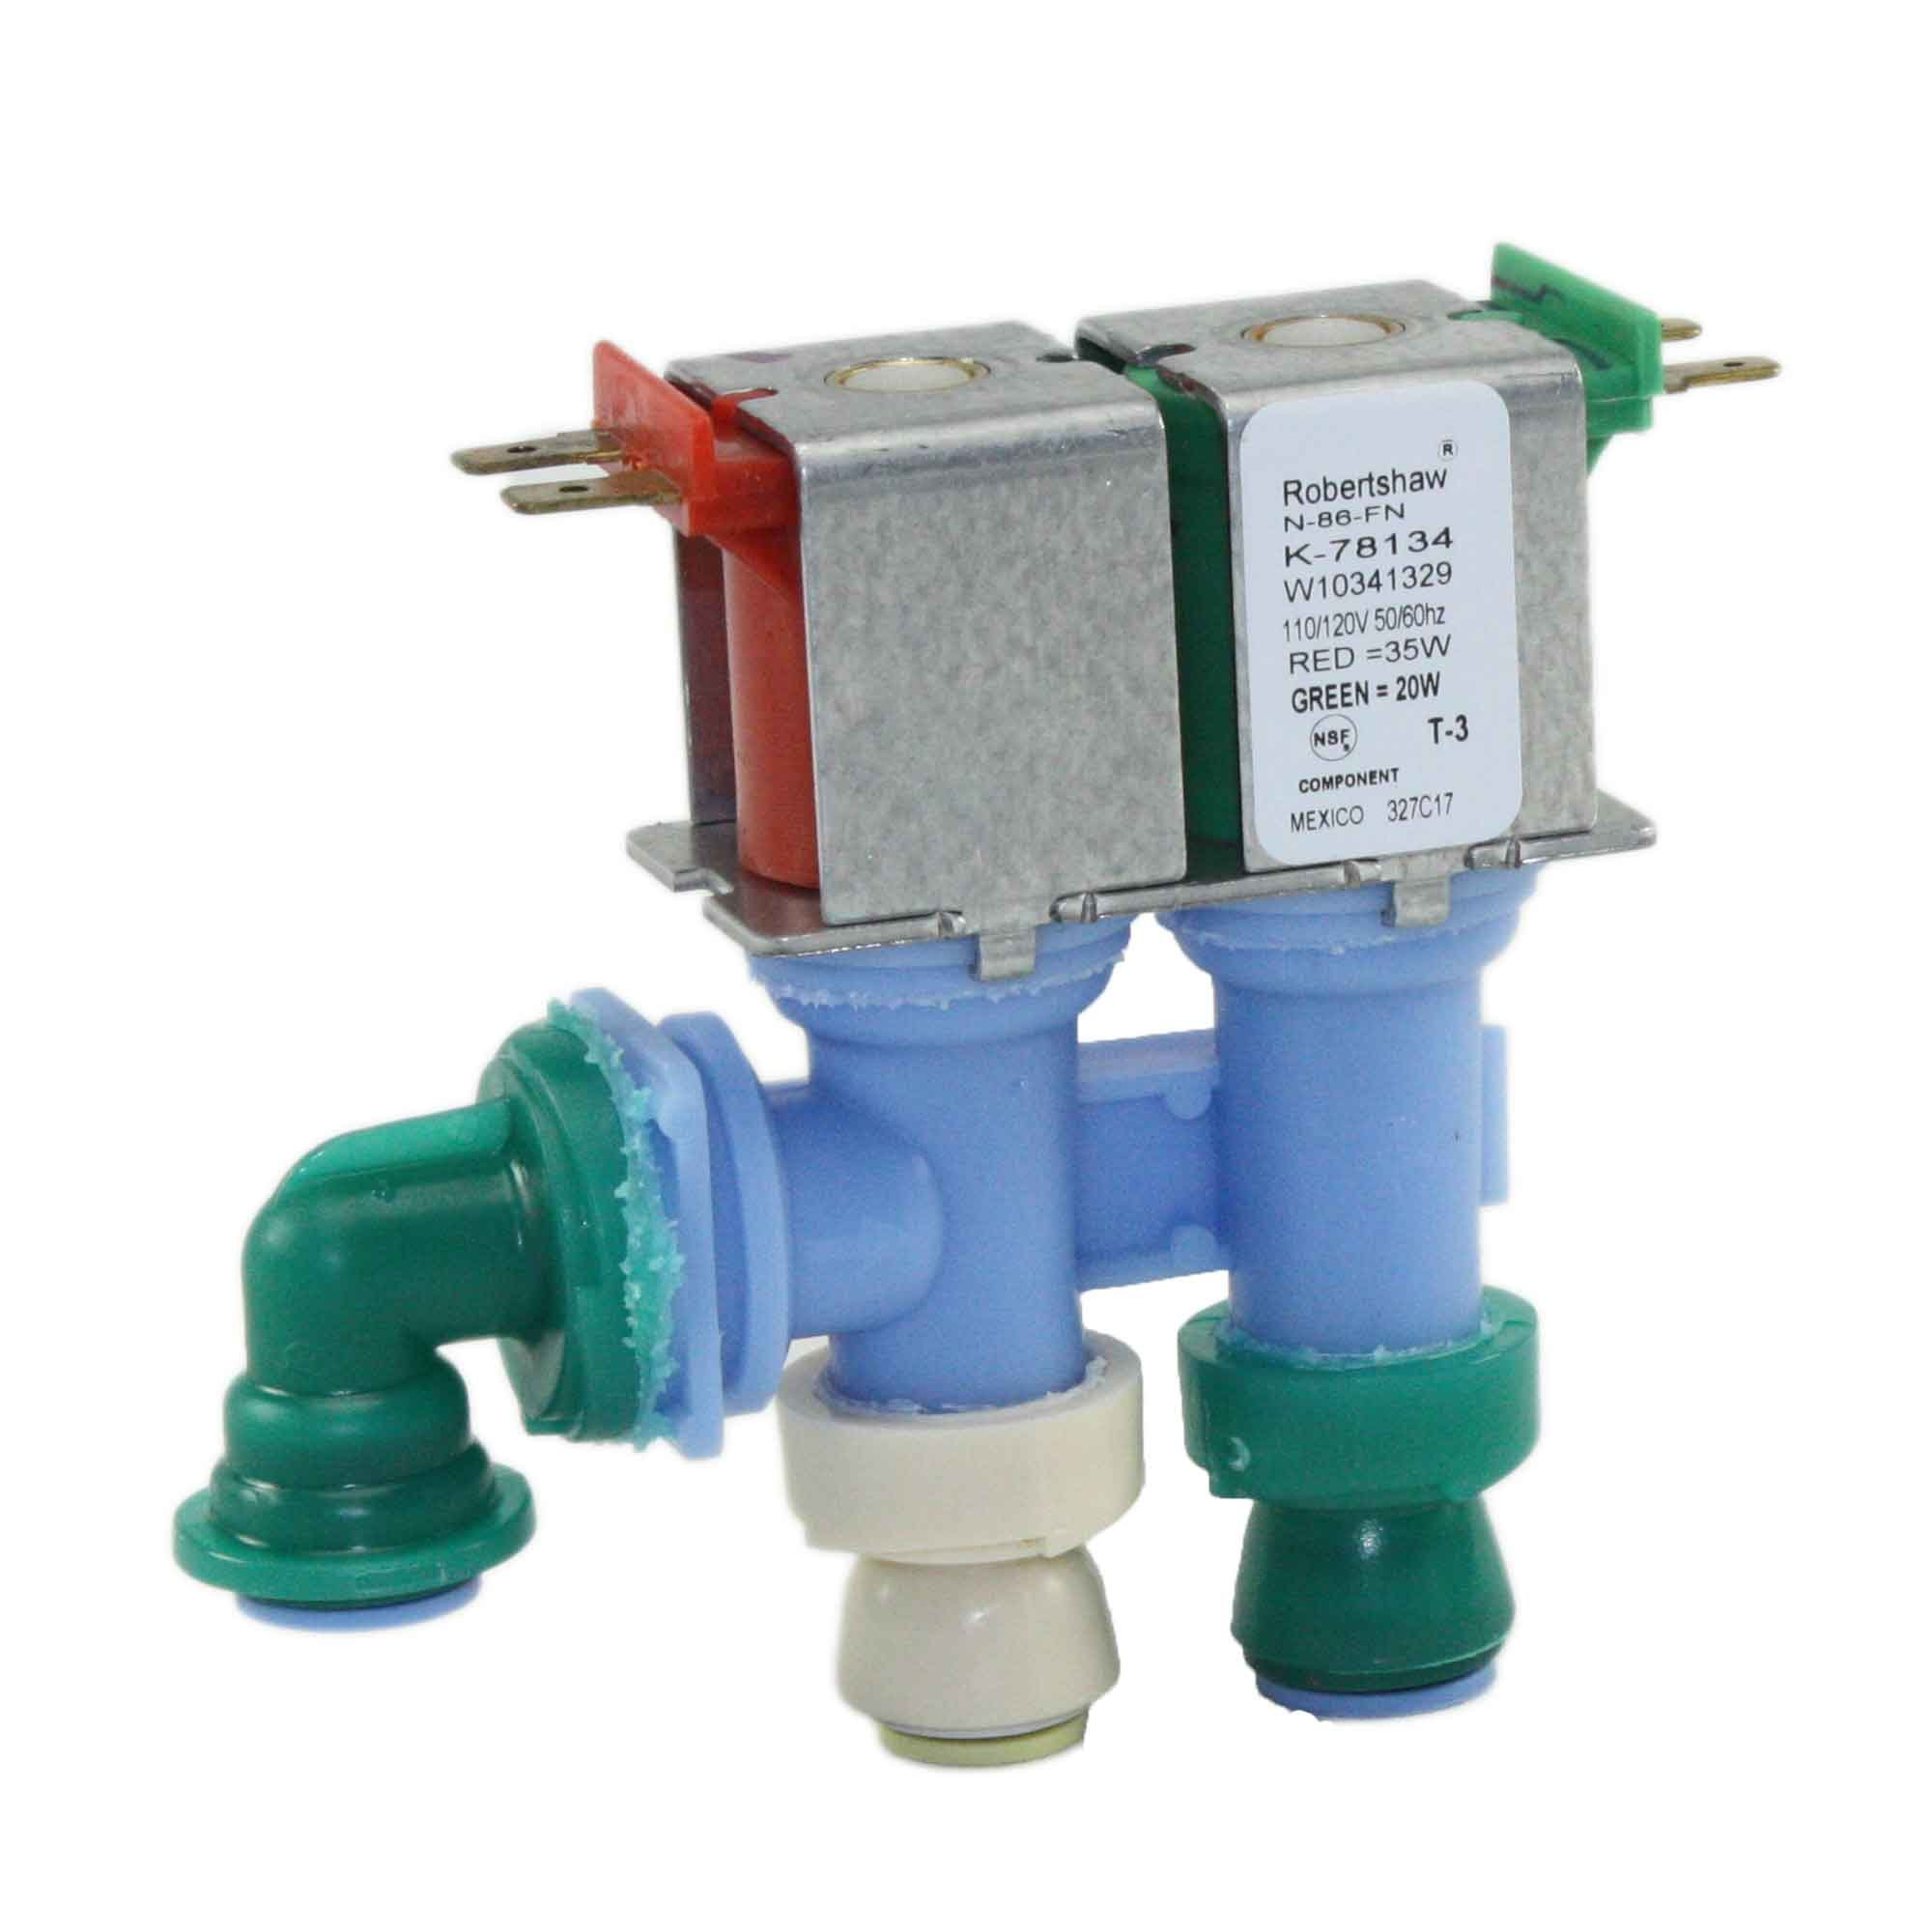 Supplying Demand W10341329 Refrigerator Dual Water Valve Works With AP6019940